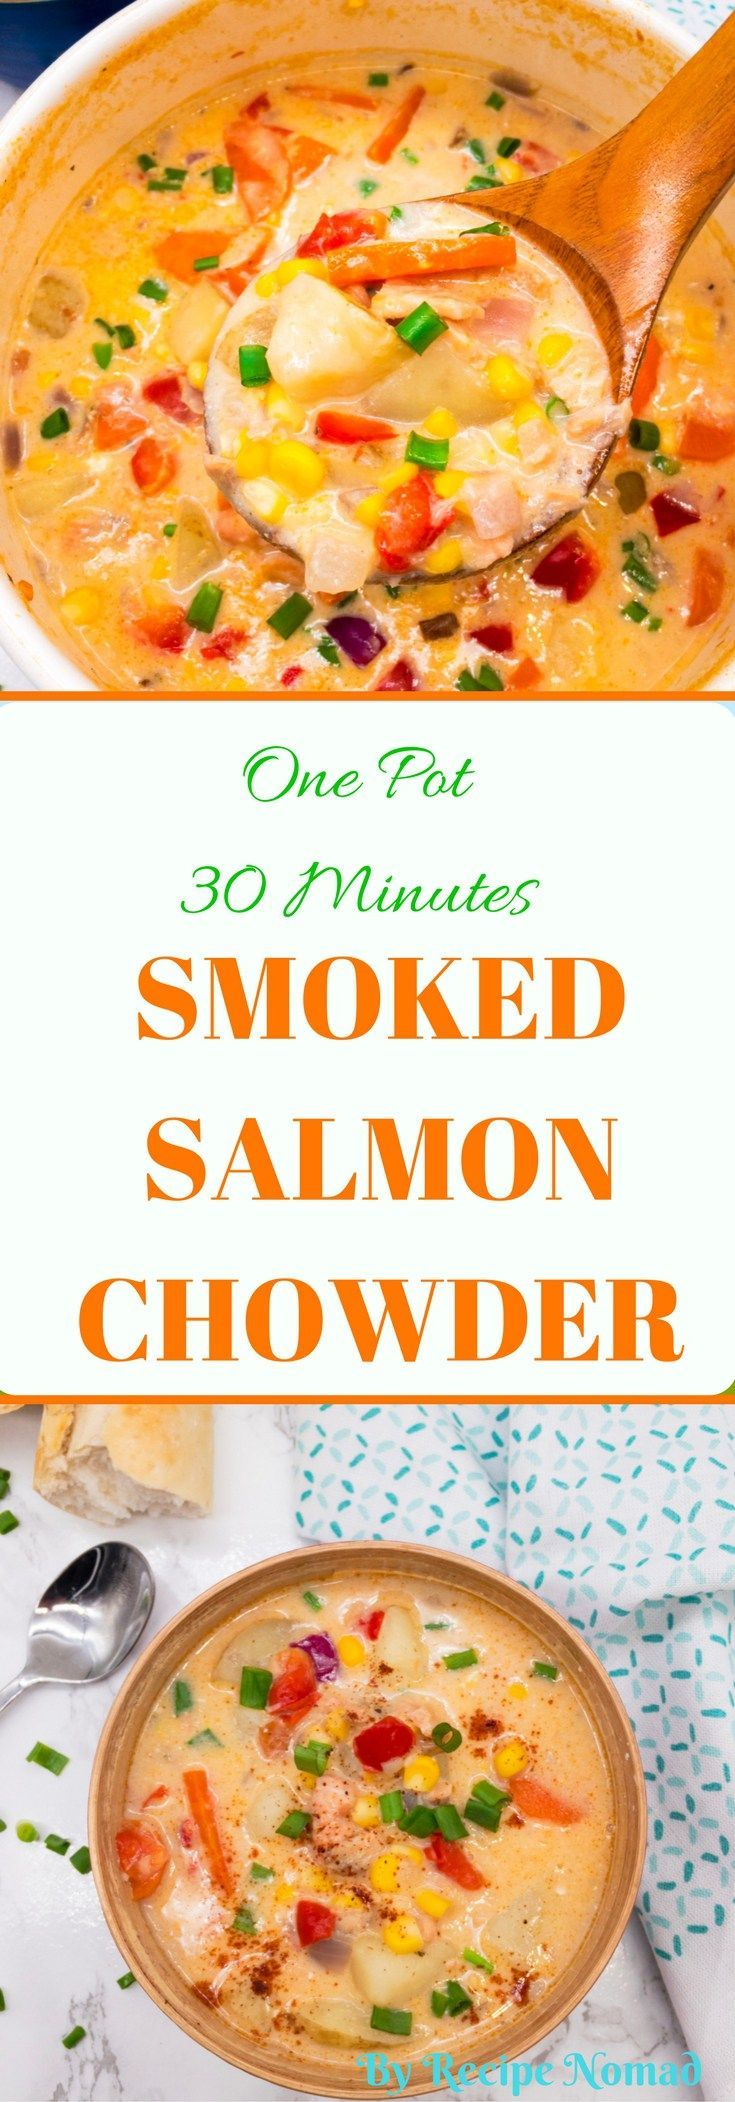 The secret to my One Pot 30 Minutes Smoked Salmon Chowder? Fresh vegetables, the best smoked salmon and a spoonful of cream cheese to give it an extra creamy flavor!   One Pot 30 Minutes Smoked Salmon Chowder   Recipe Nomad  http://www.recipenomad.com/one-pot-30-minutes-smoked-salmon-chowder/